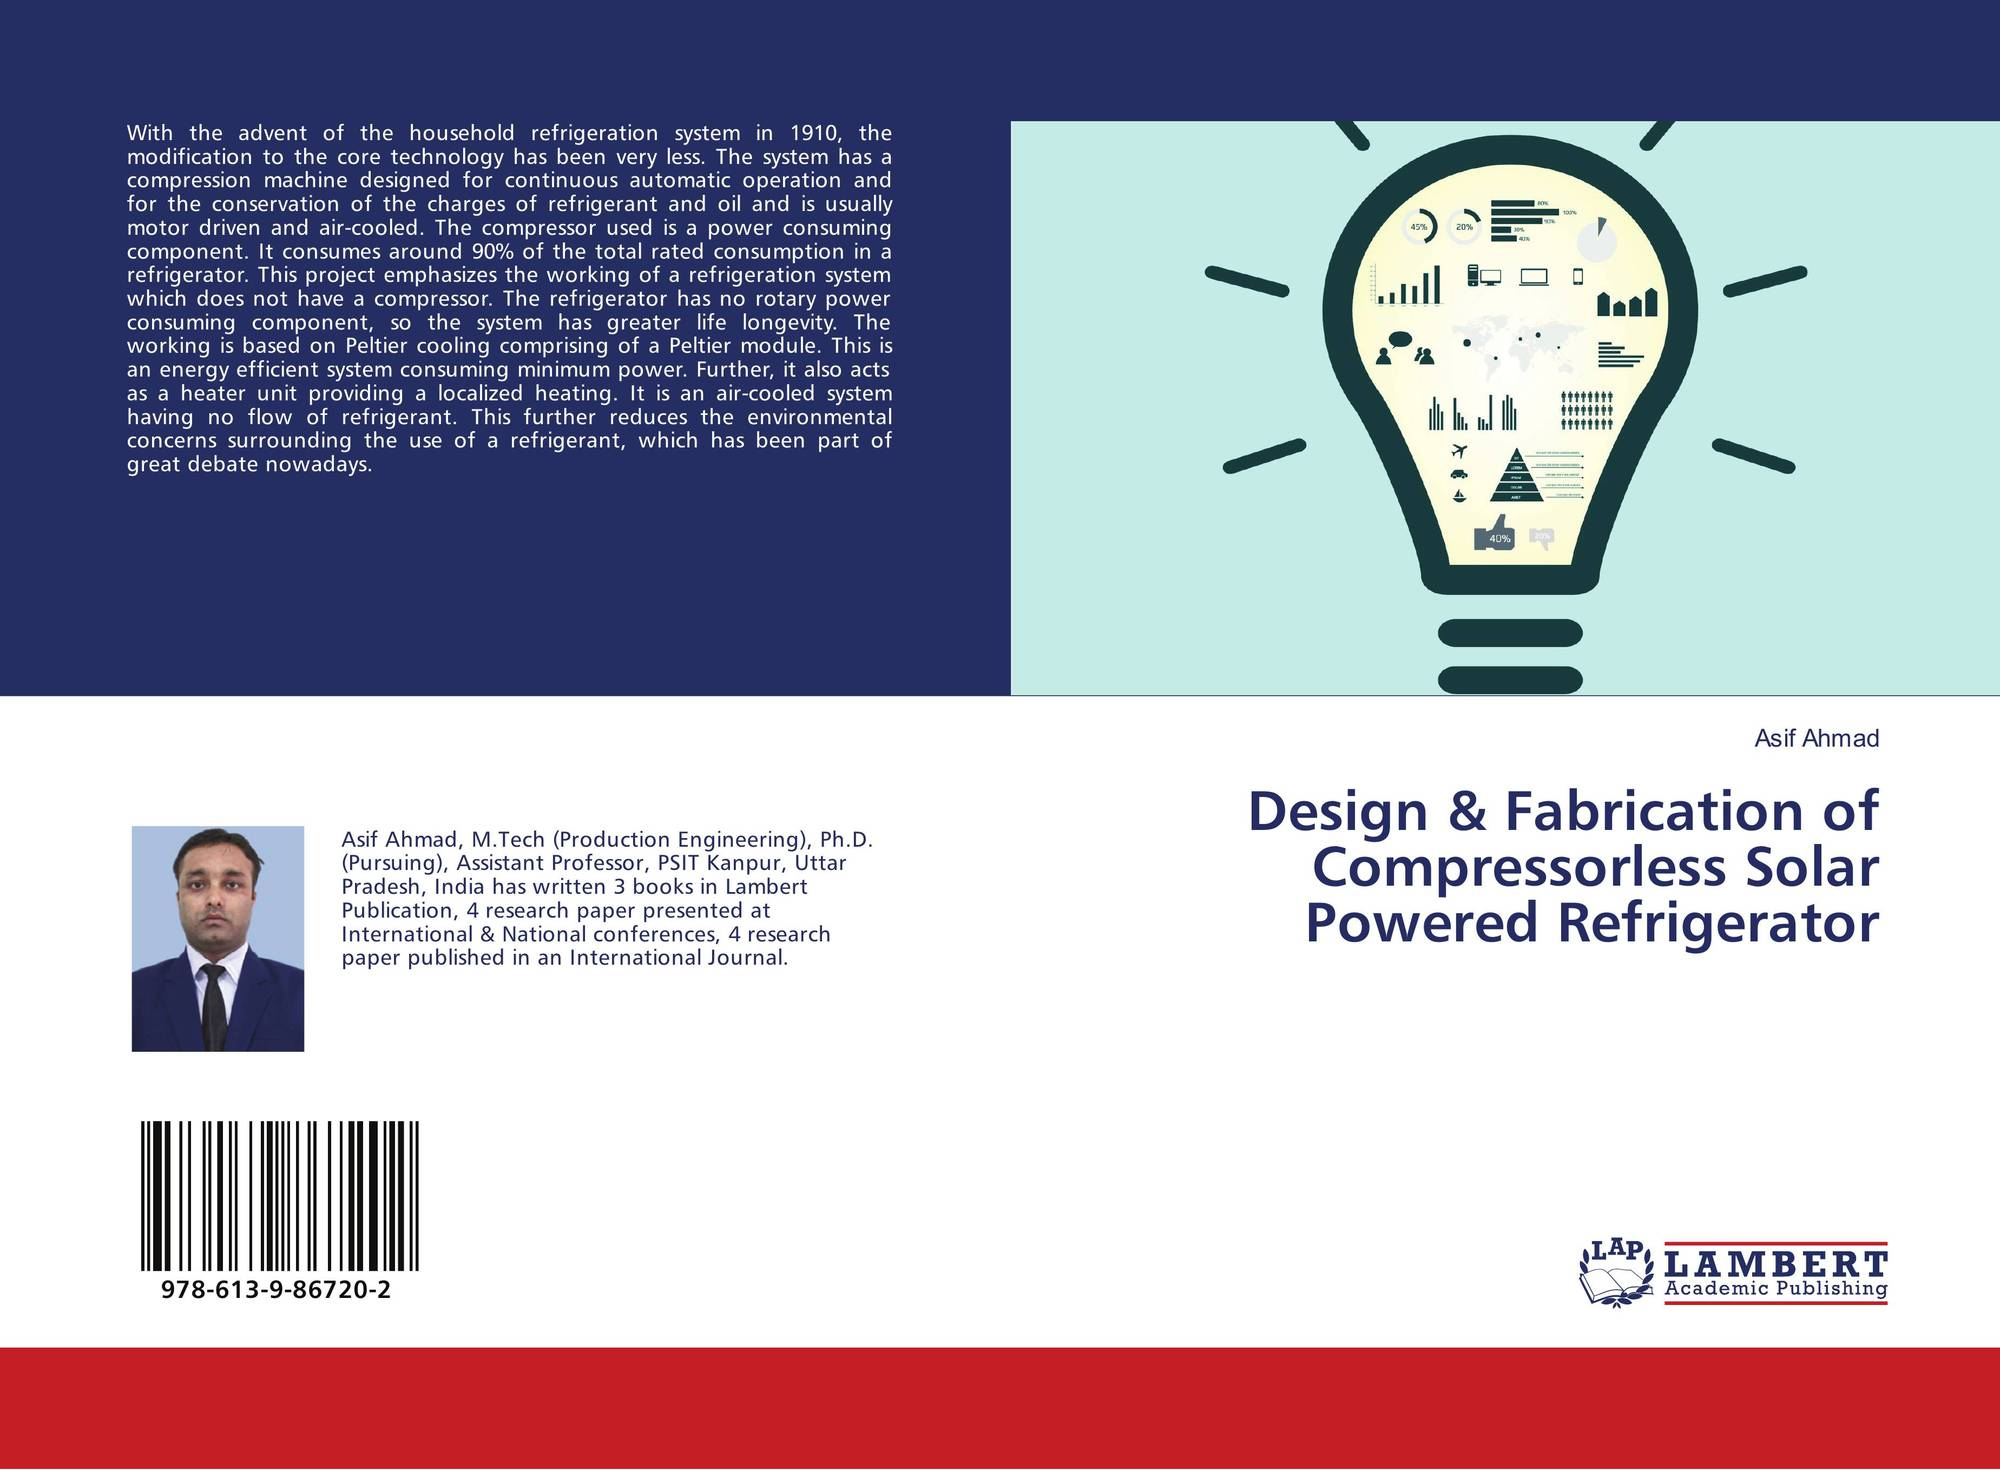 research paper on compressorless refrigerator